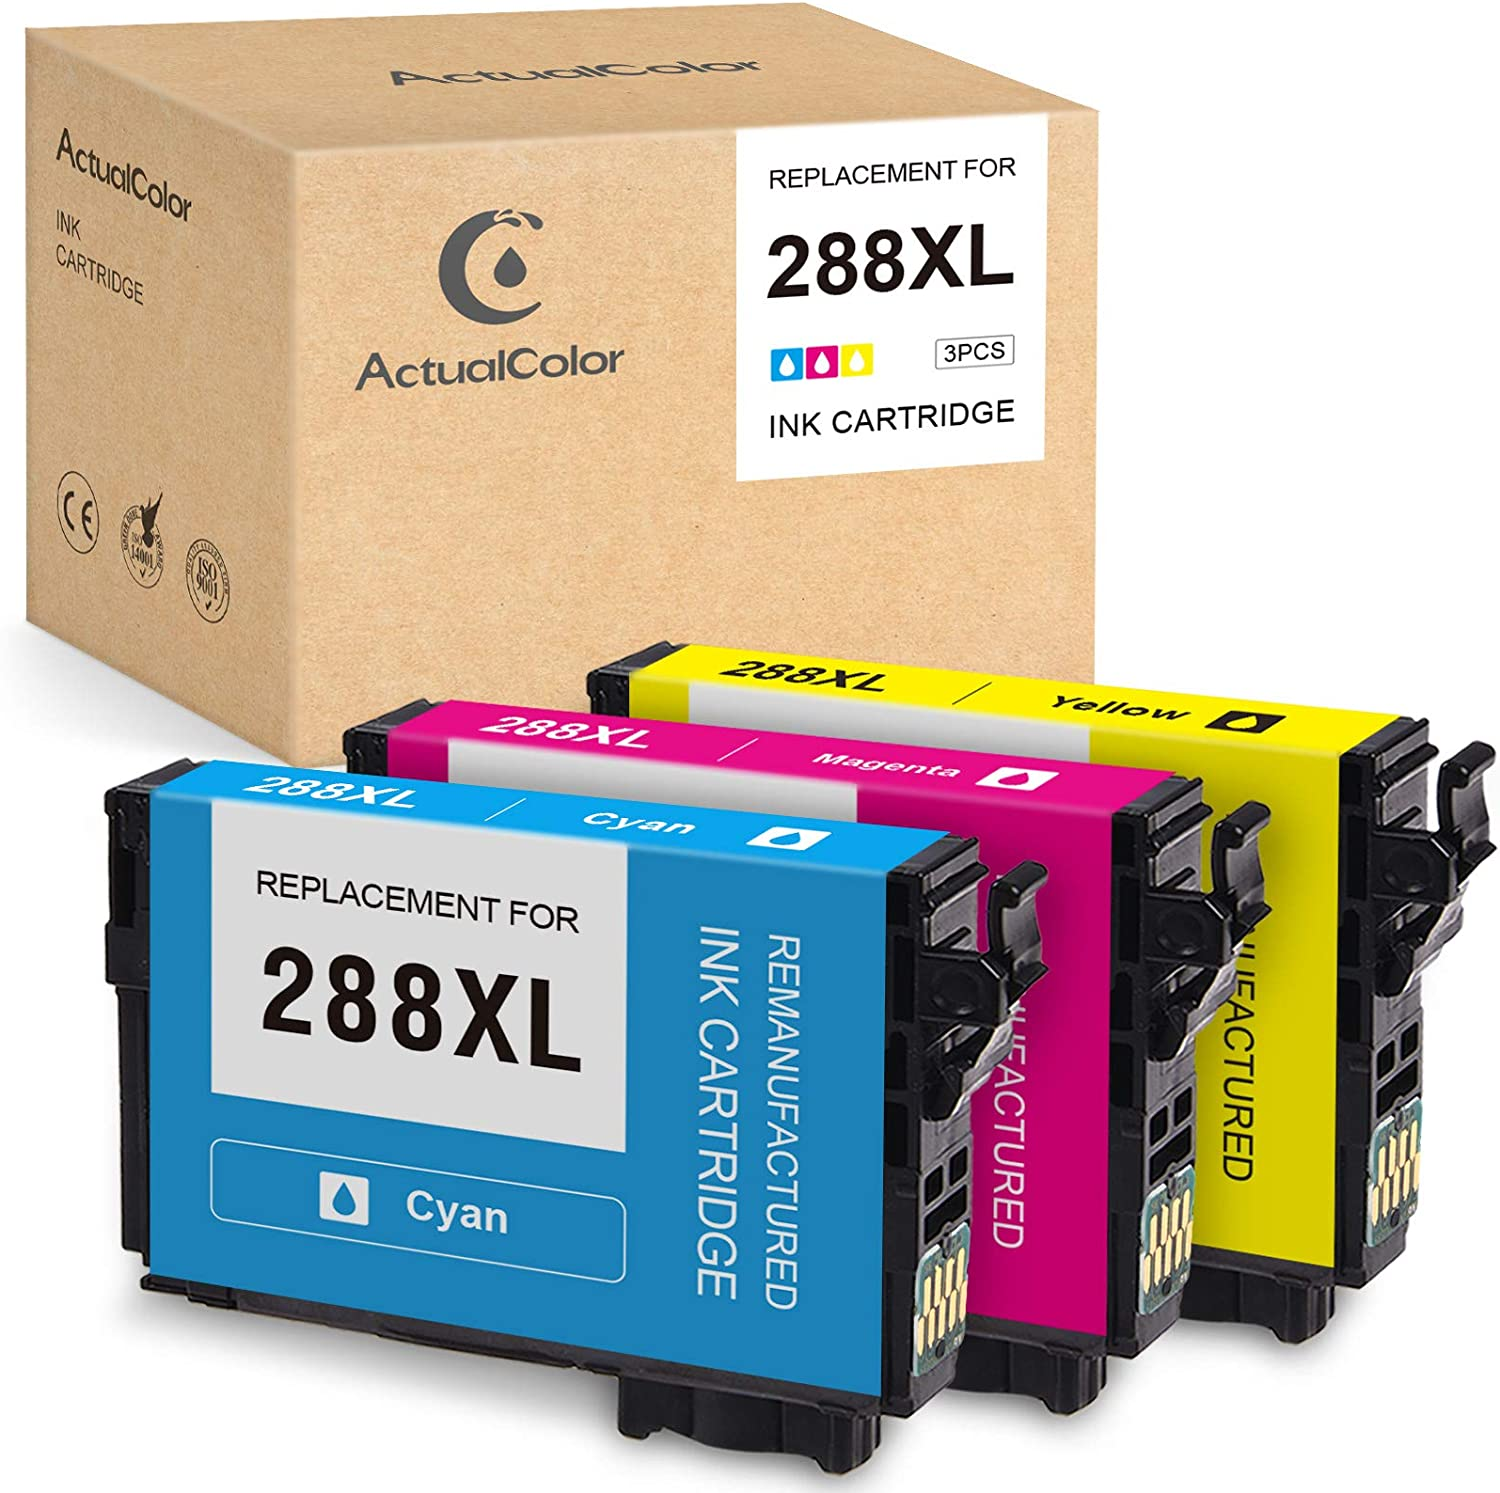 ActualColor C Remanufactured Ink Cartridge Replacement for Epson 288XL T288XL 288 XL for Expression Home XP-446 XP-440 XP-430 XP-330 XP-340 XP-434 (Cyan, Magenta, Yellow, 3-Pack)